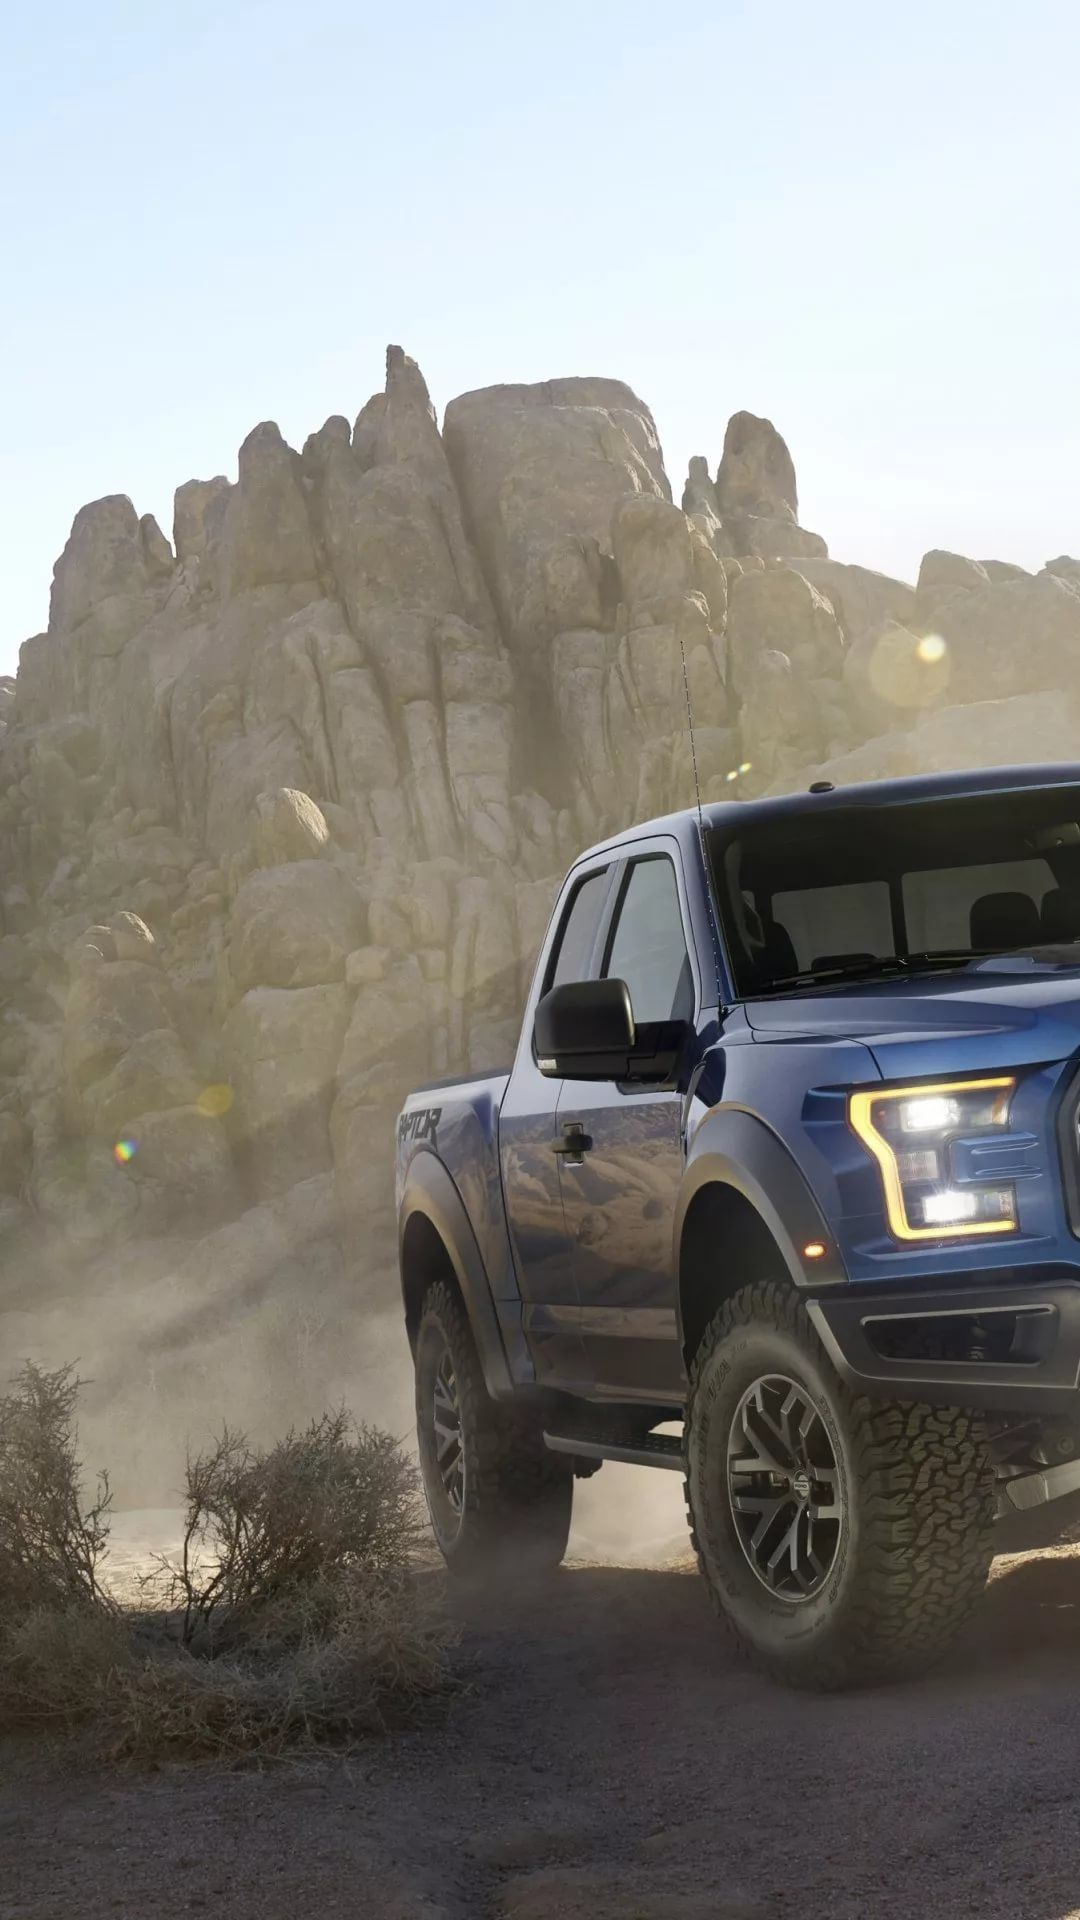 Lifted Truck iPhone hd wallpaper